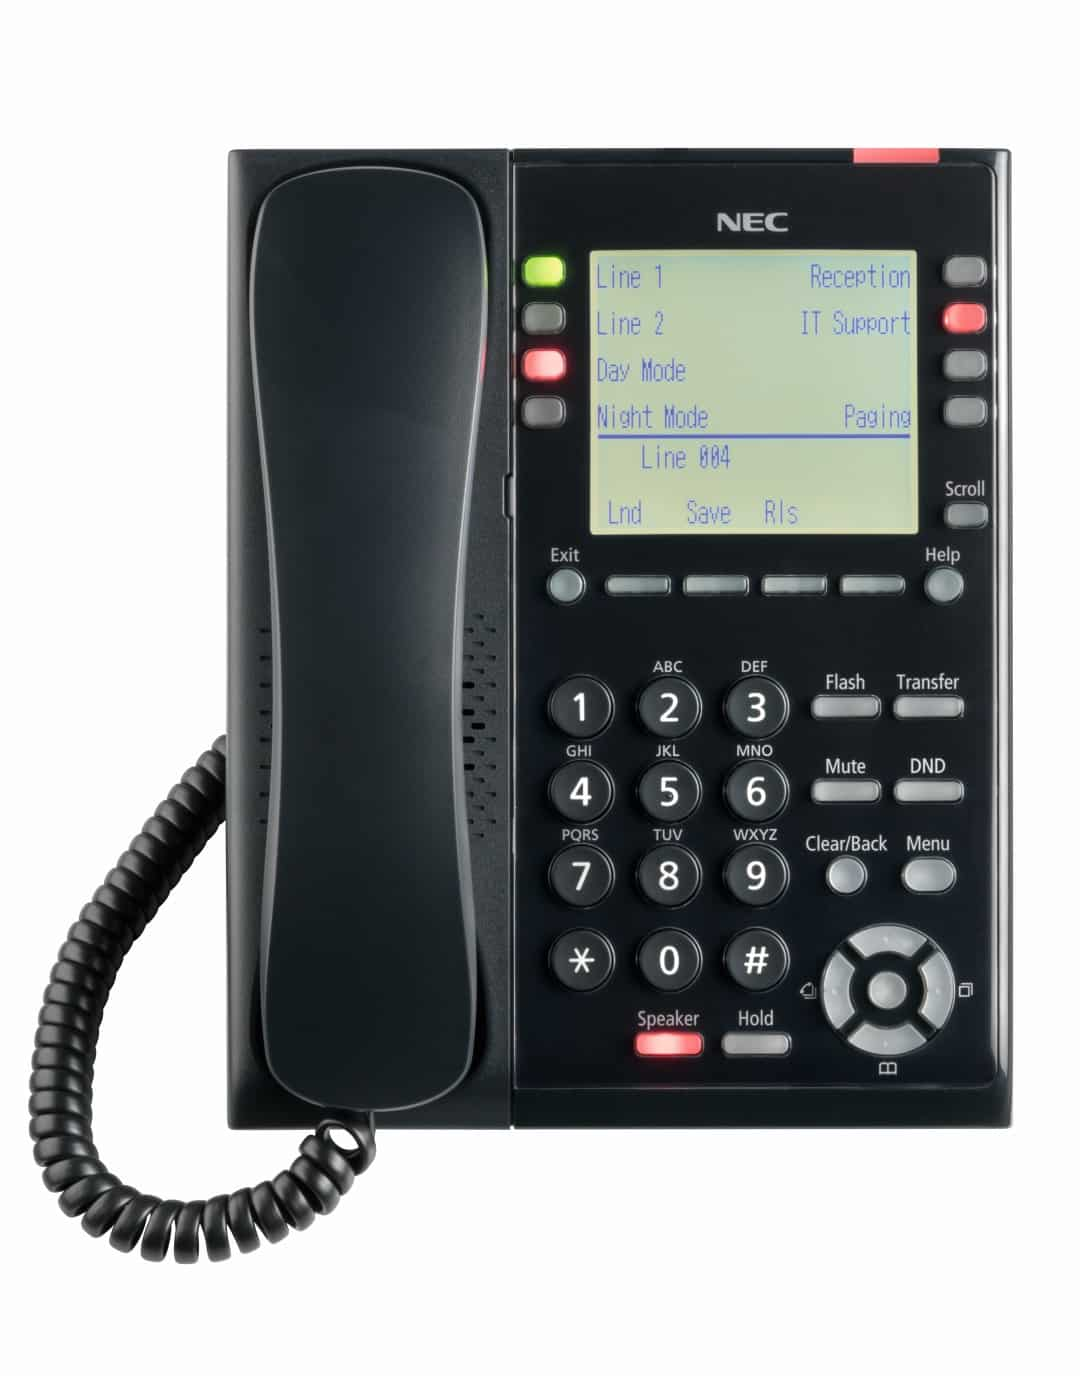 NEC SL2100 IP Desktop Telephone